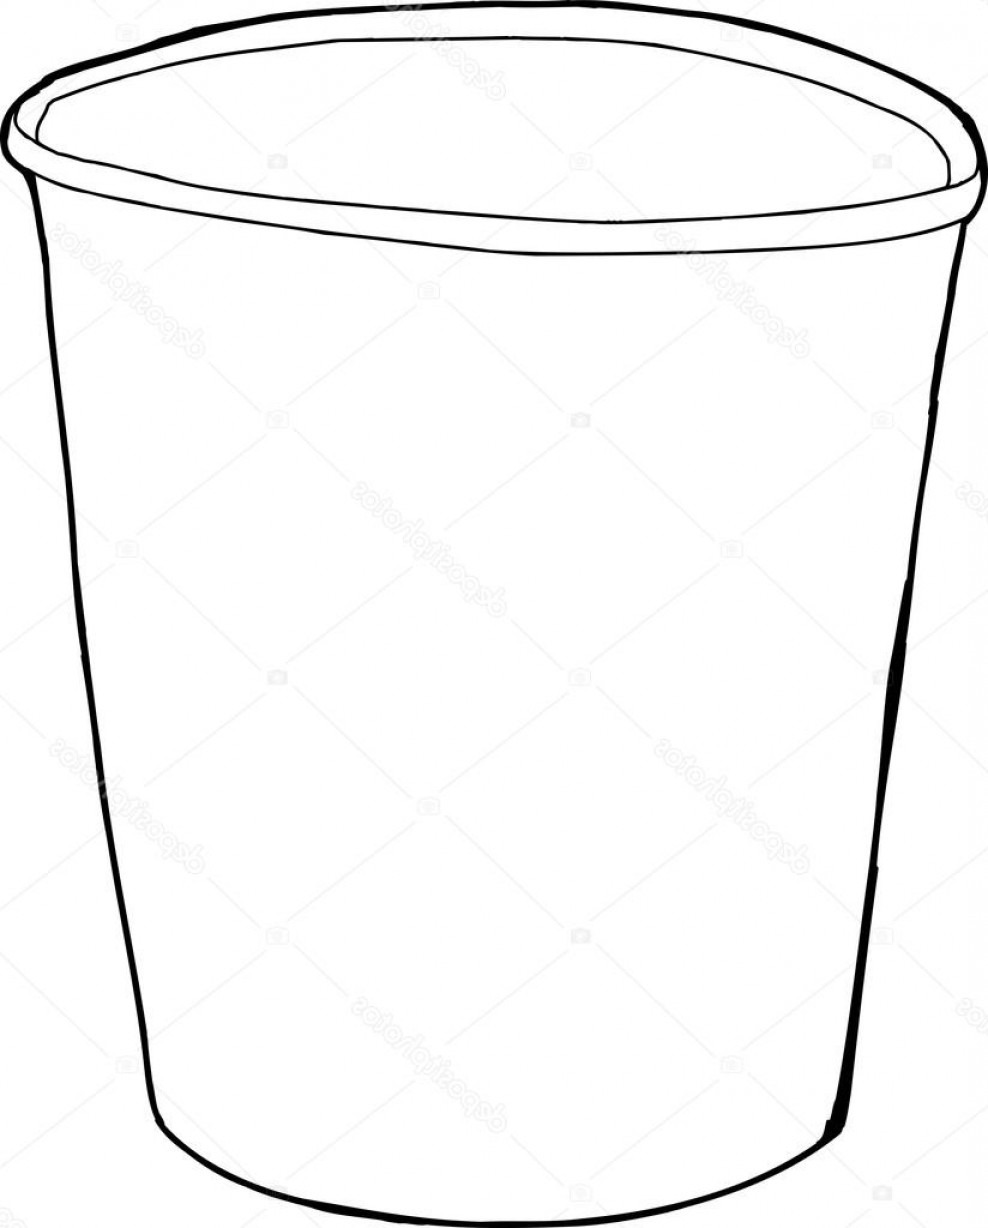 Stock Illustration Cartoon Outline Of Styrofoam Cup.